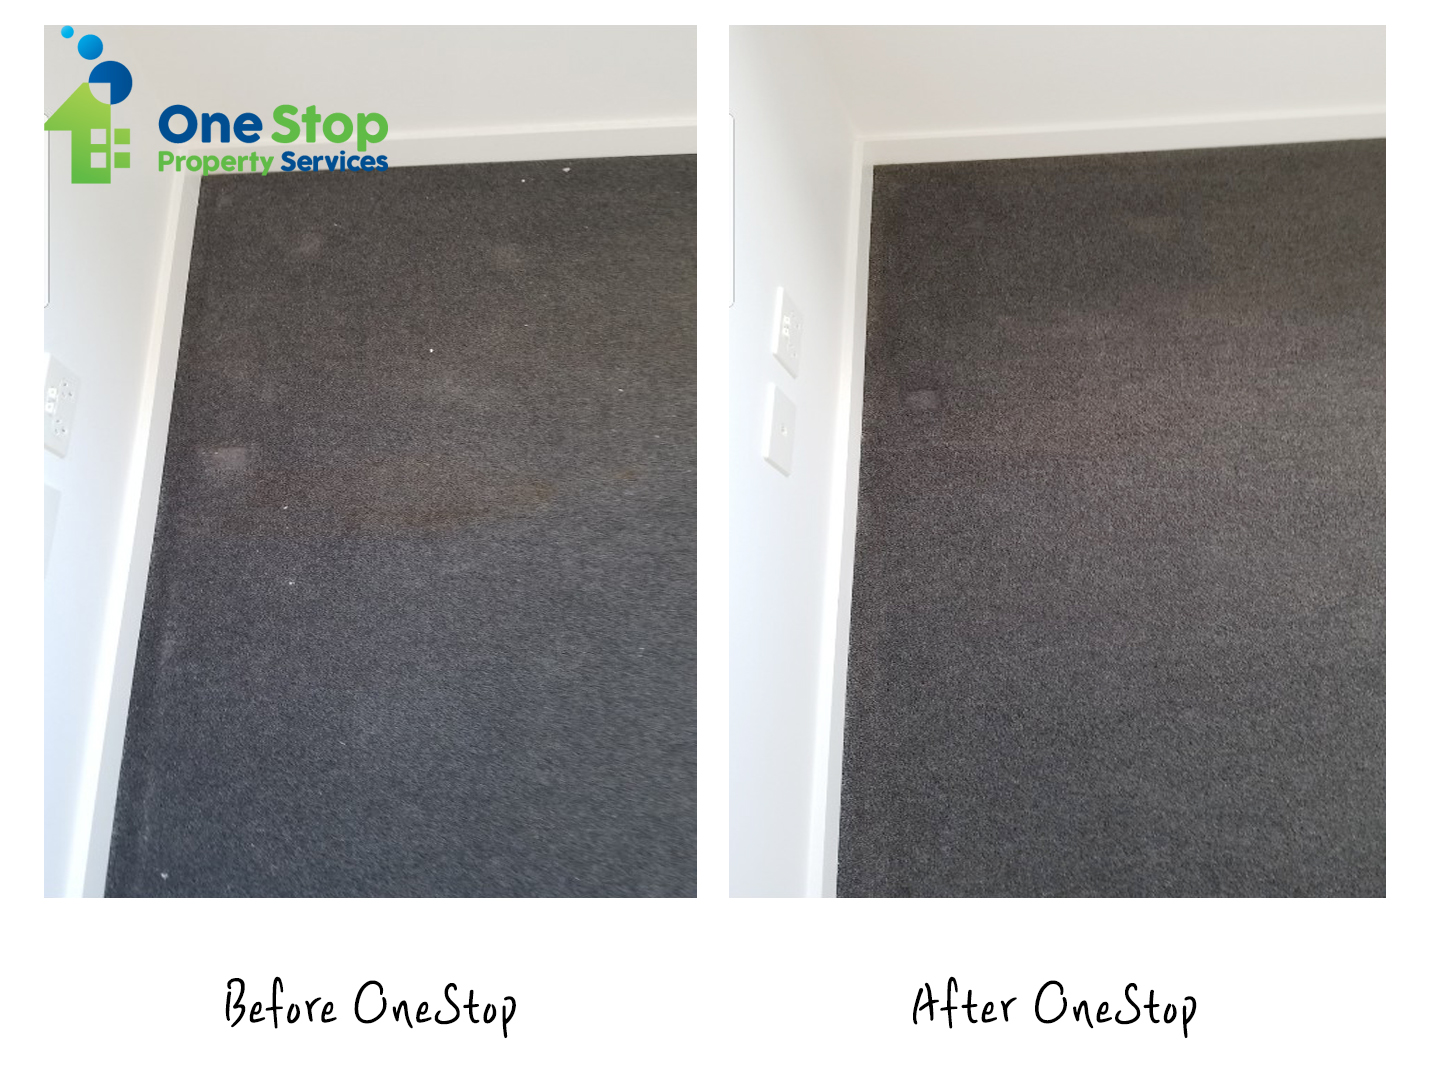 Before and after cleaning the dark grey carpet